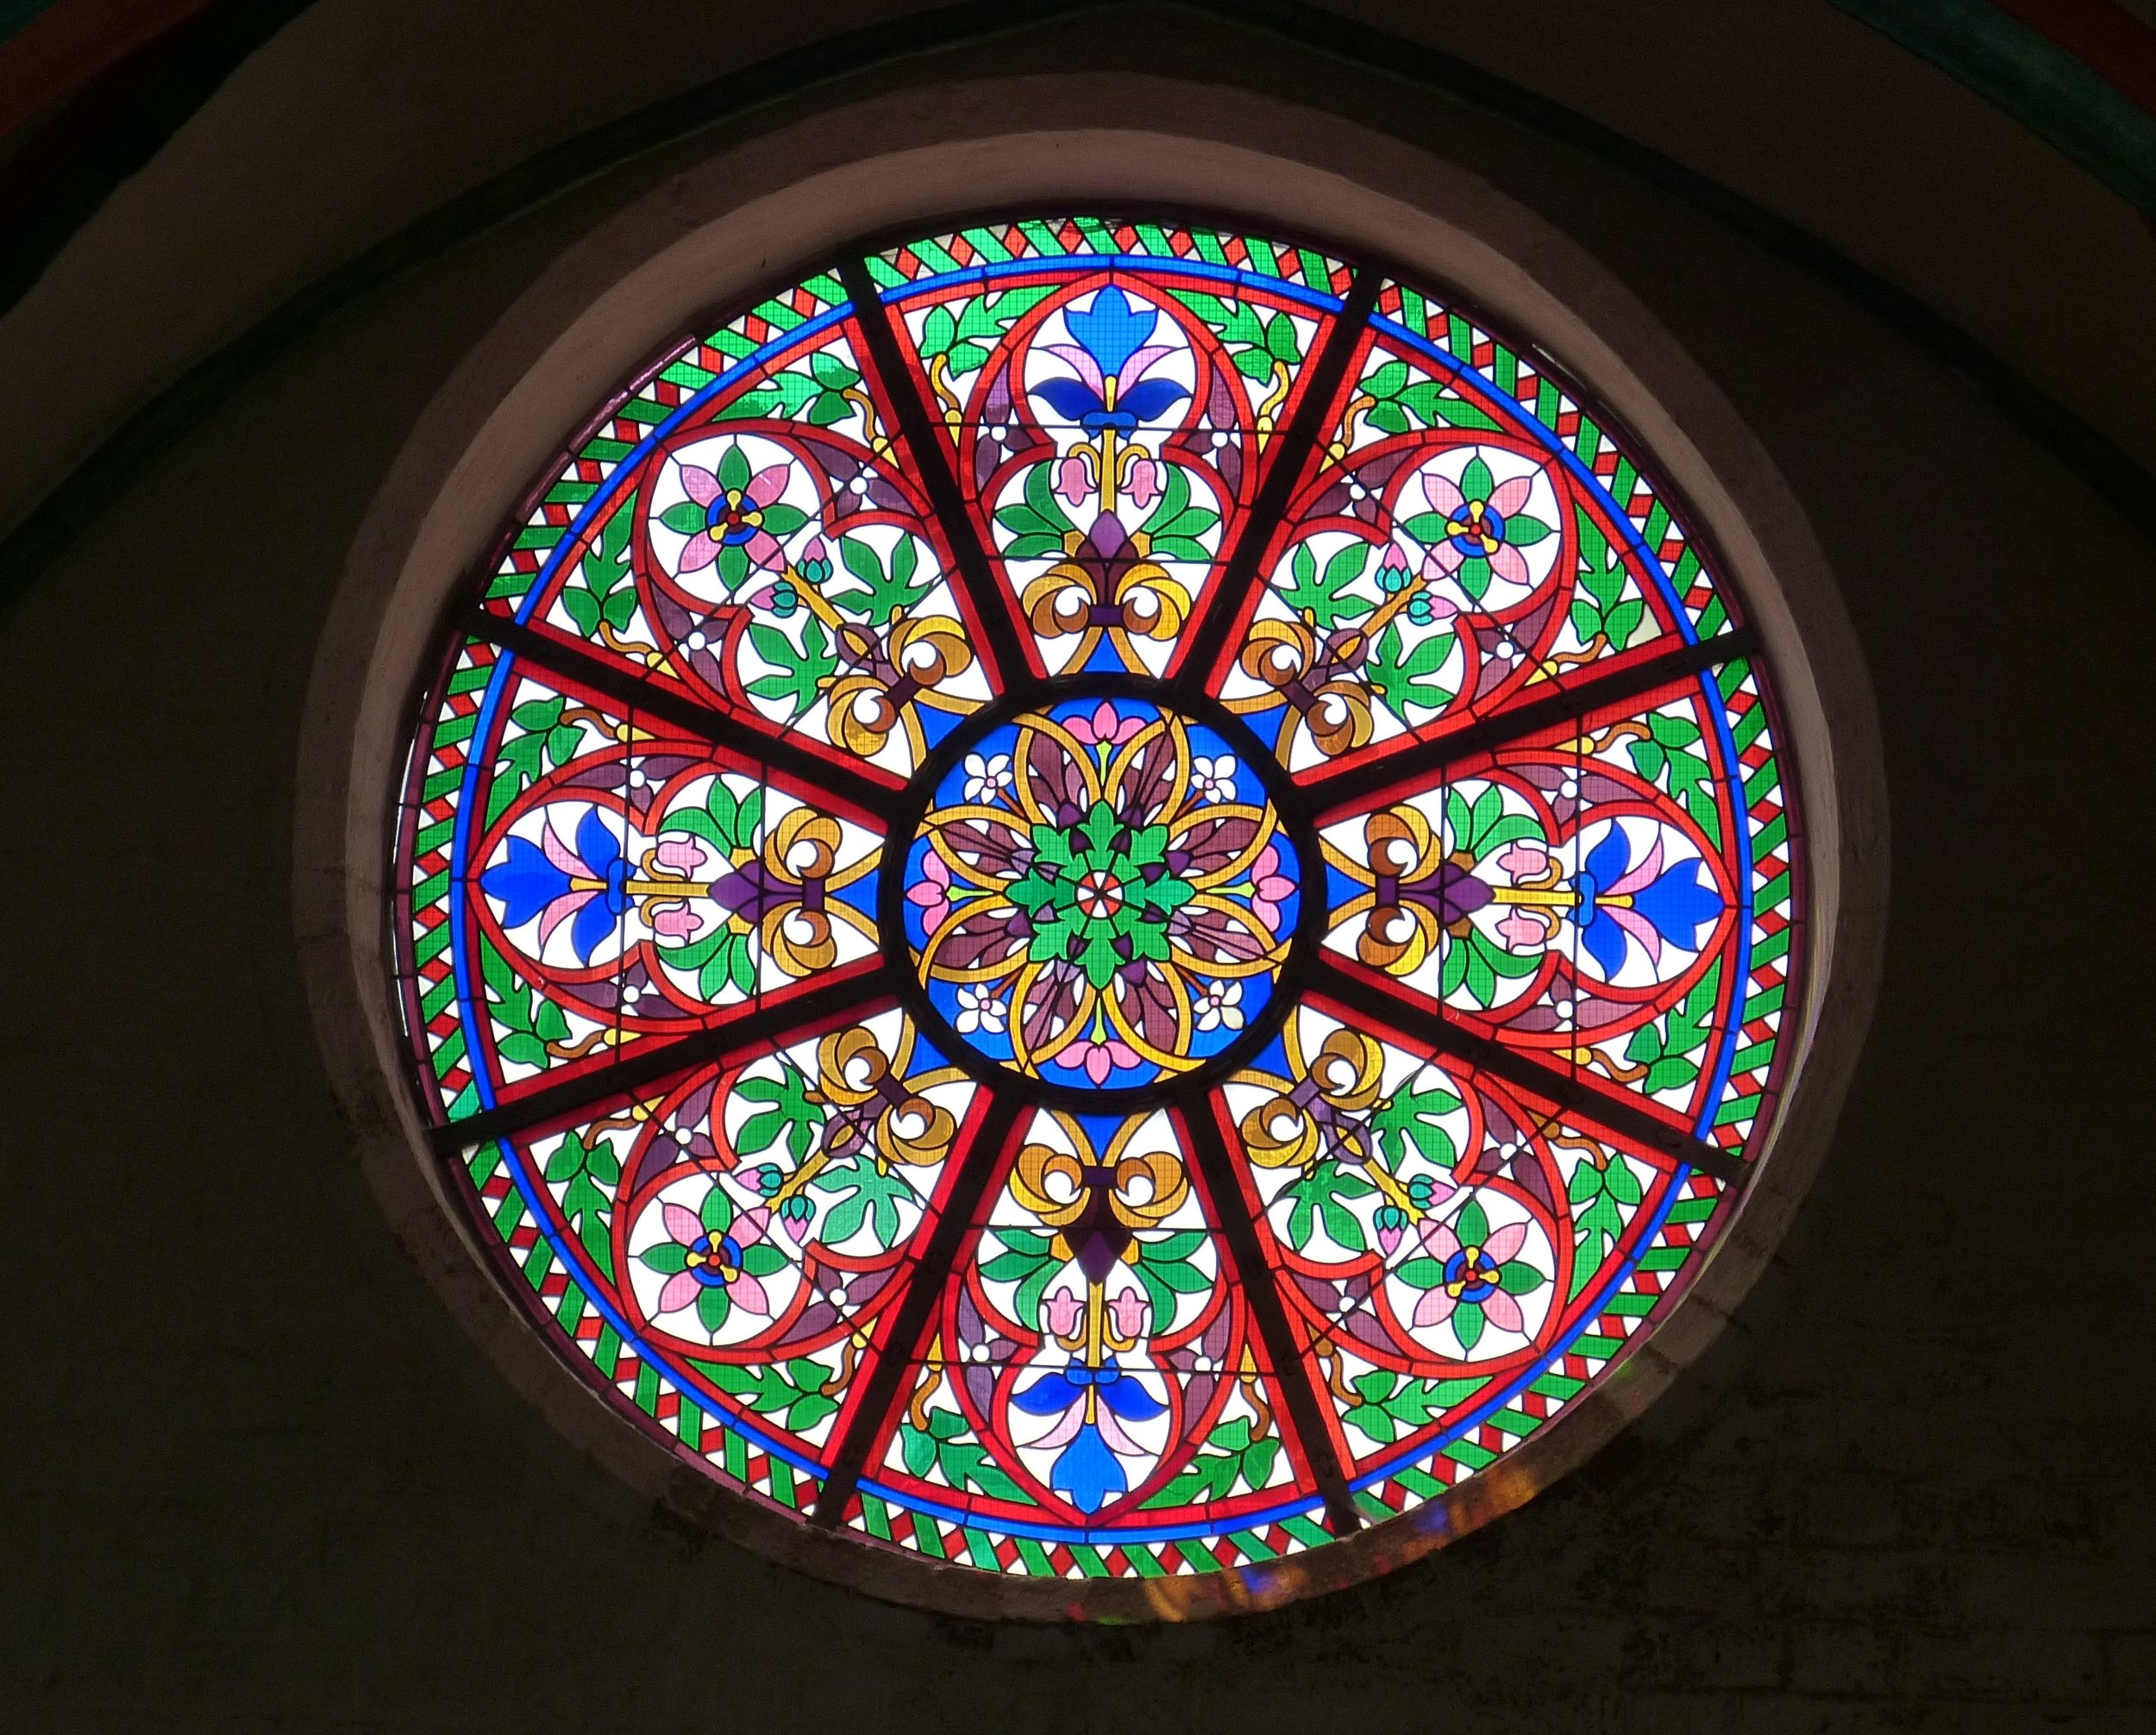 WEDNESDAY 28TH MARCH10.00 – 4.00PM - An enlightening all-day workshop covering the basic design and construction of a stained glass panel. Learn how to cut coloured glass sheets and assemble them within the leaded framework soldering them together to make a beautiful stained glass panel.N.B.Material costs for all-day stained glass workshop: £25ppThis event can accommodate 6 participants and will run from 10am-4pm with a break for lunch.